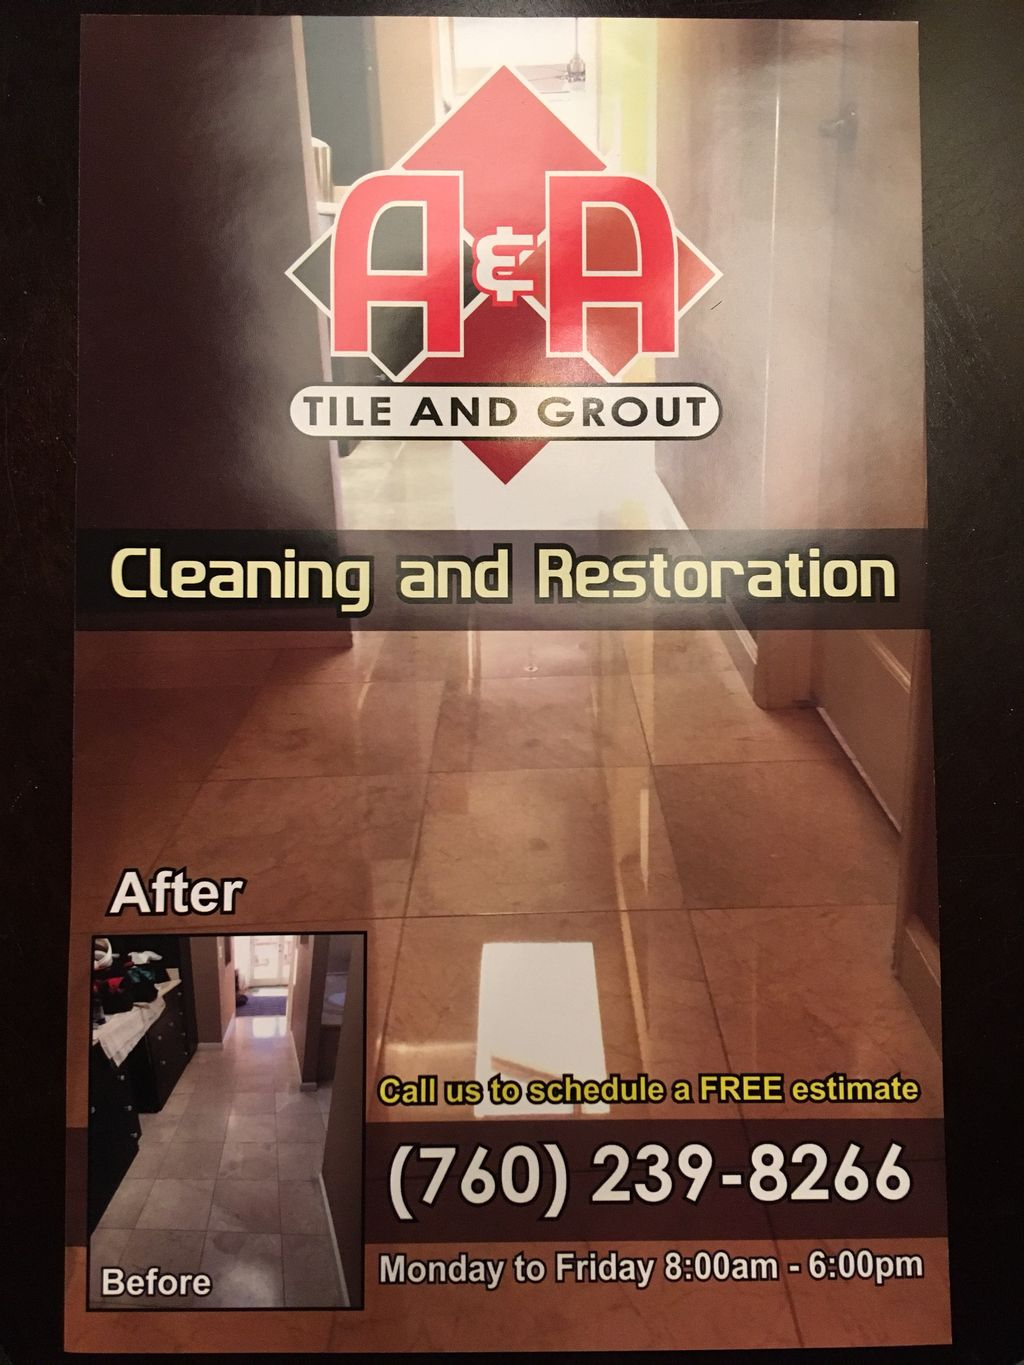 A&A TILE AND GROUT CLEANING AND RESTORATION